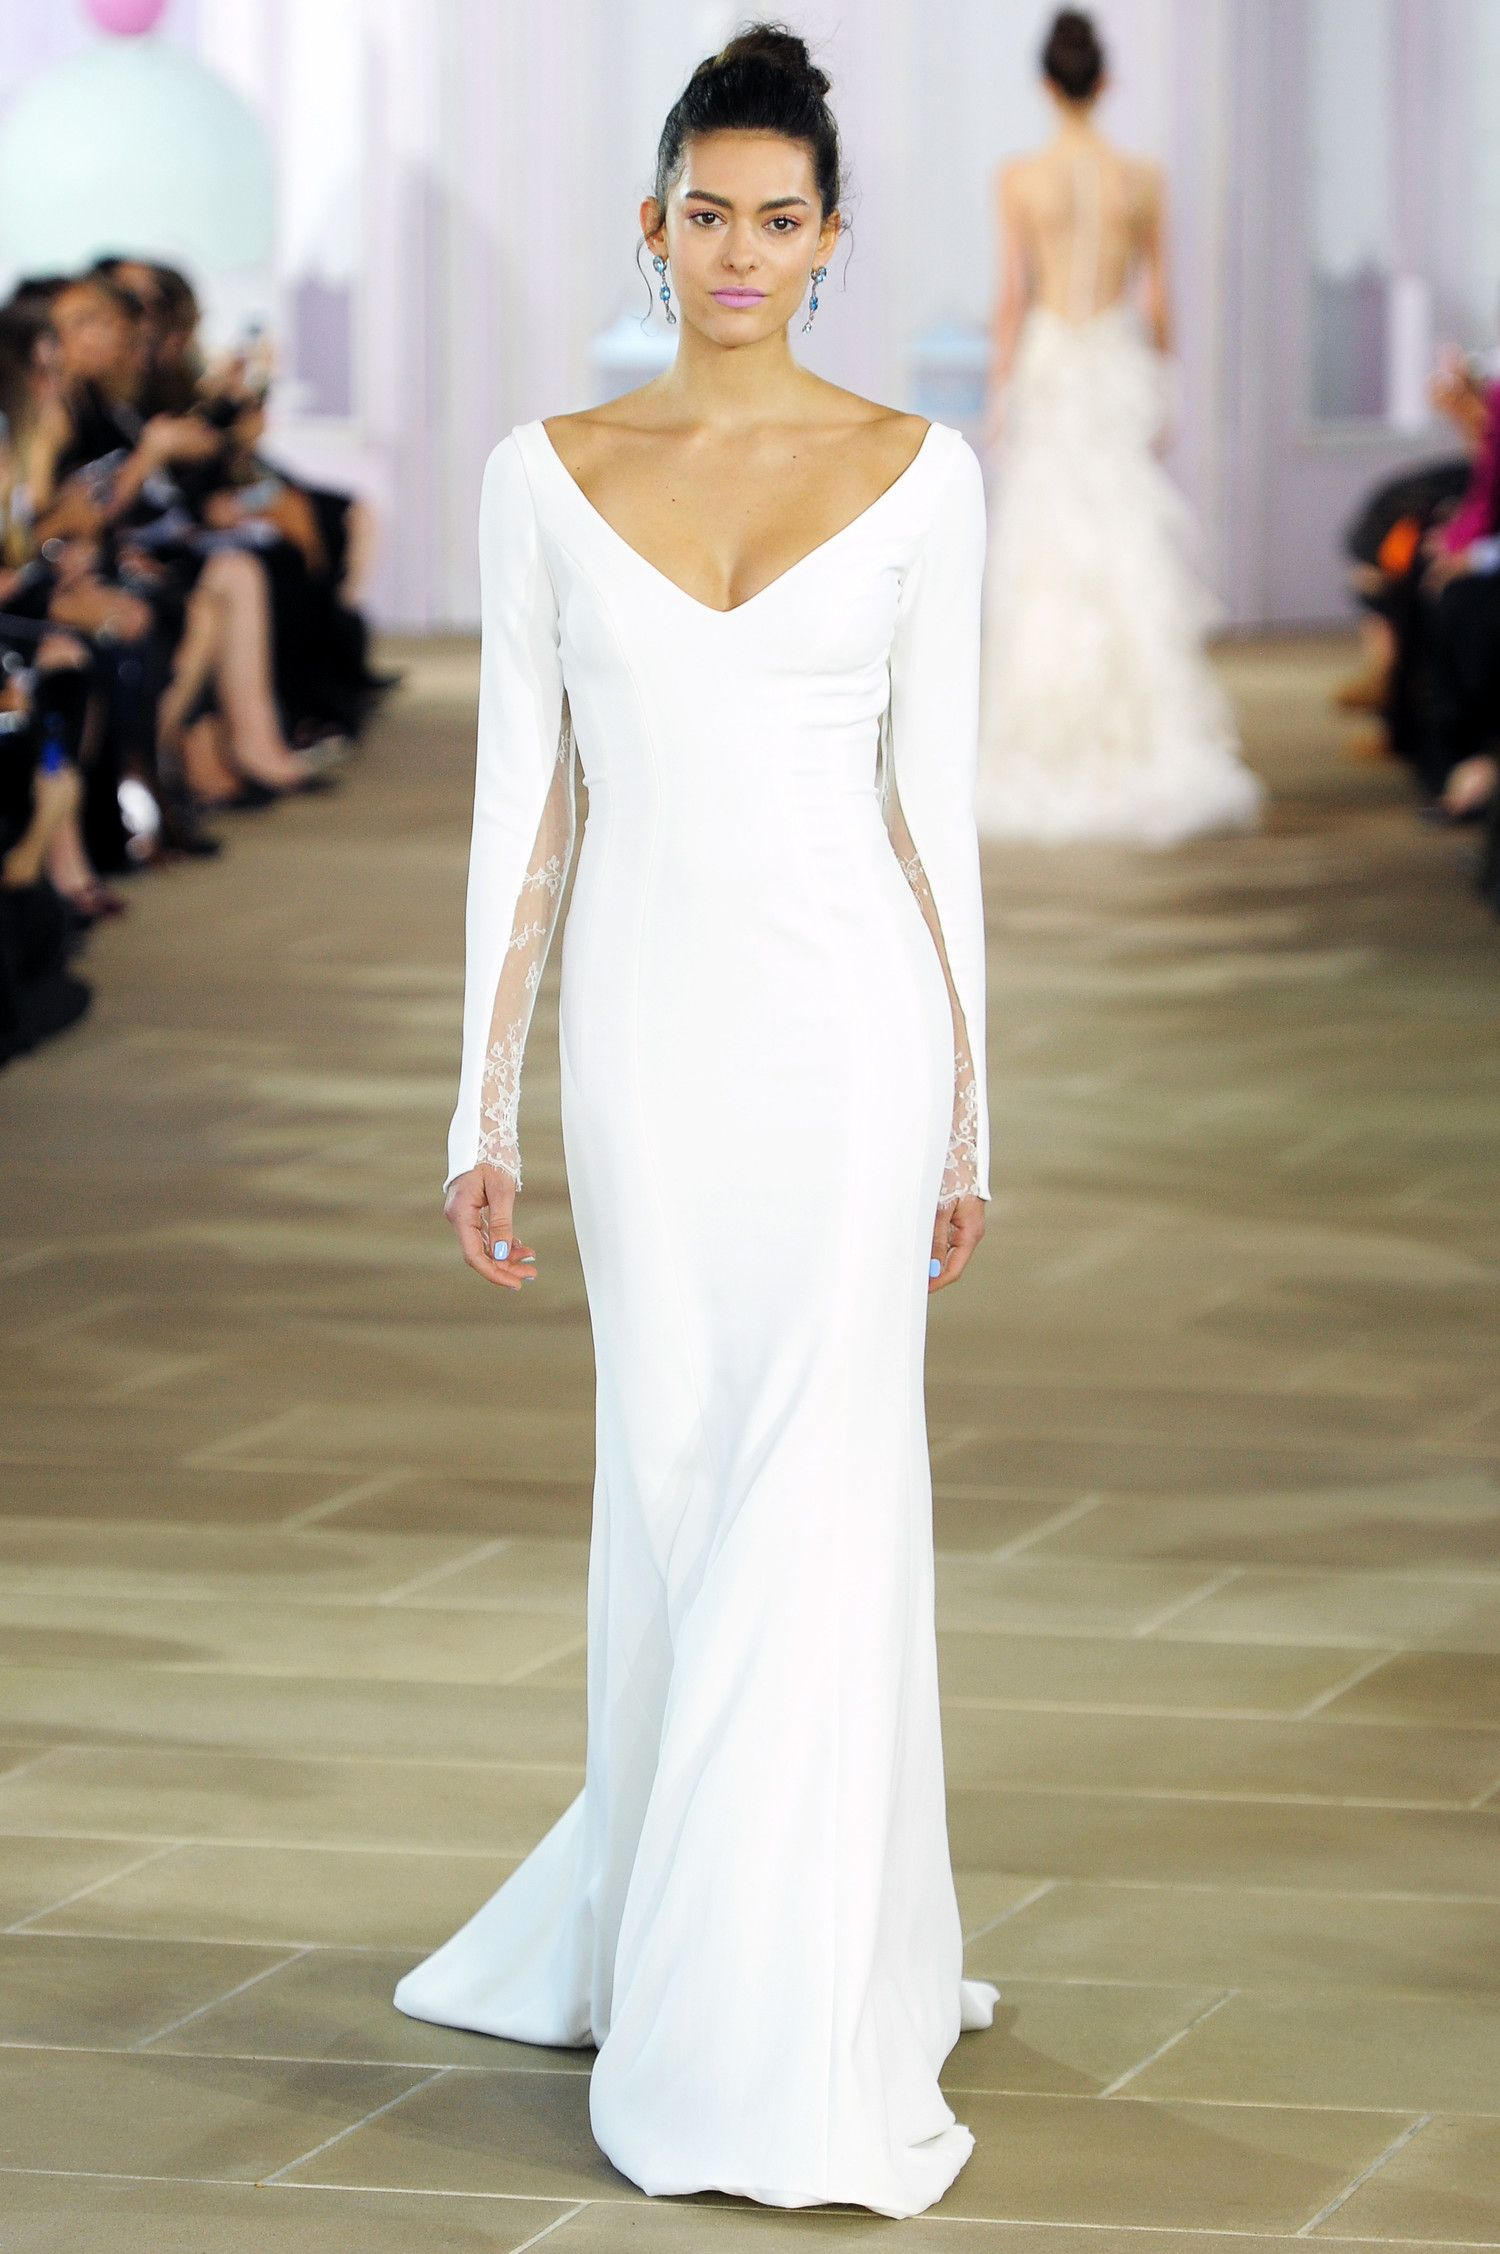 Silk sheath wedding dress  Lace inset detail provides just the right amount of romance to this